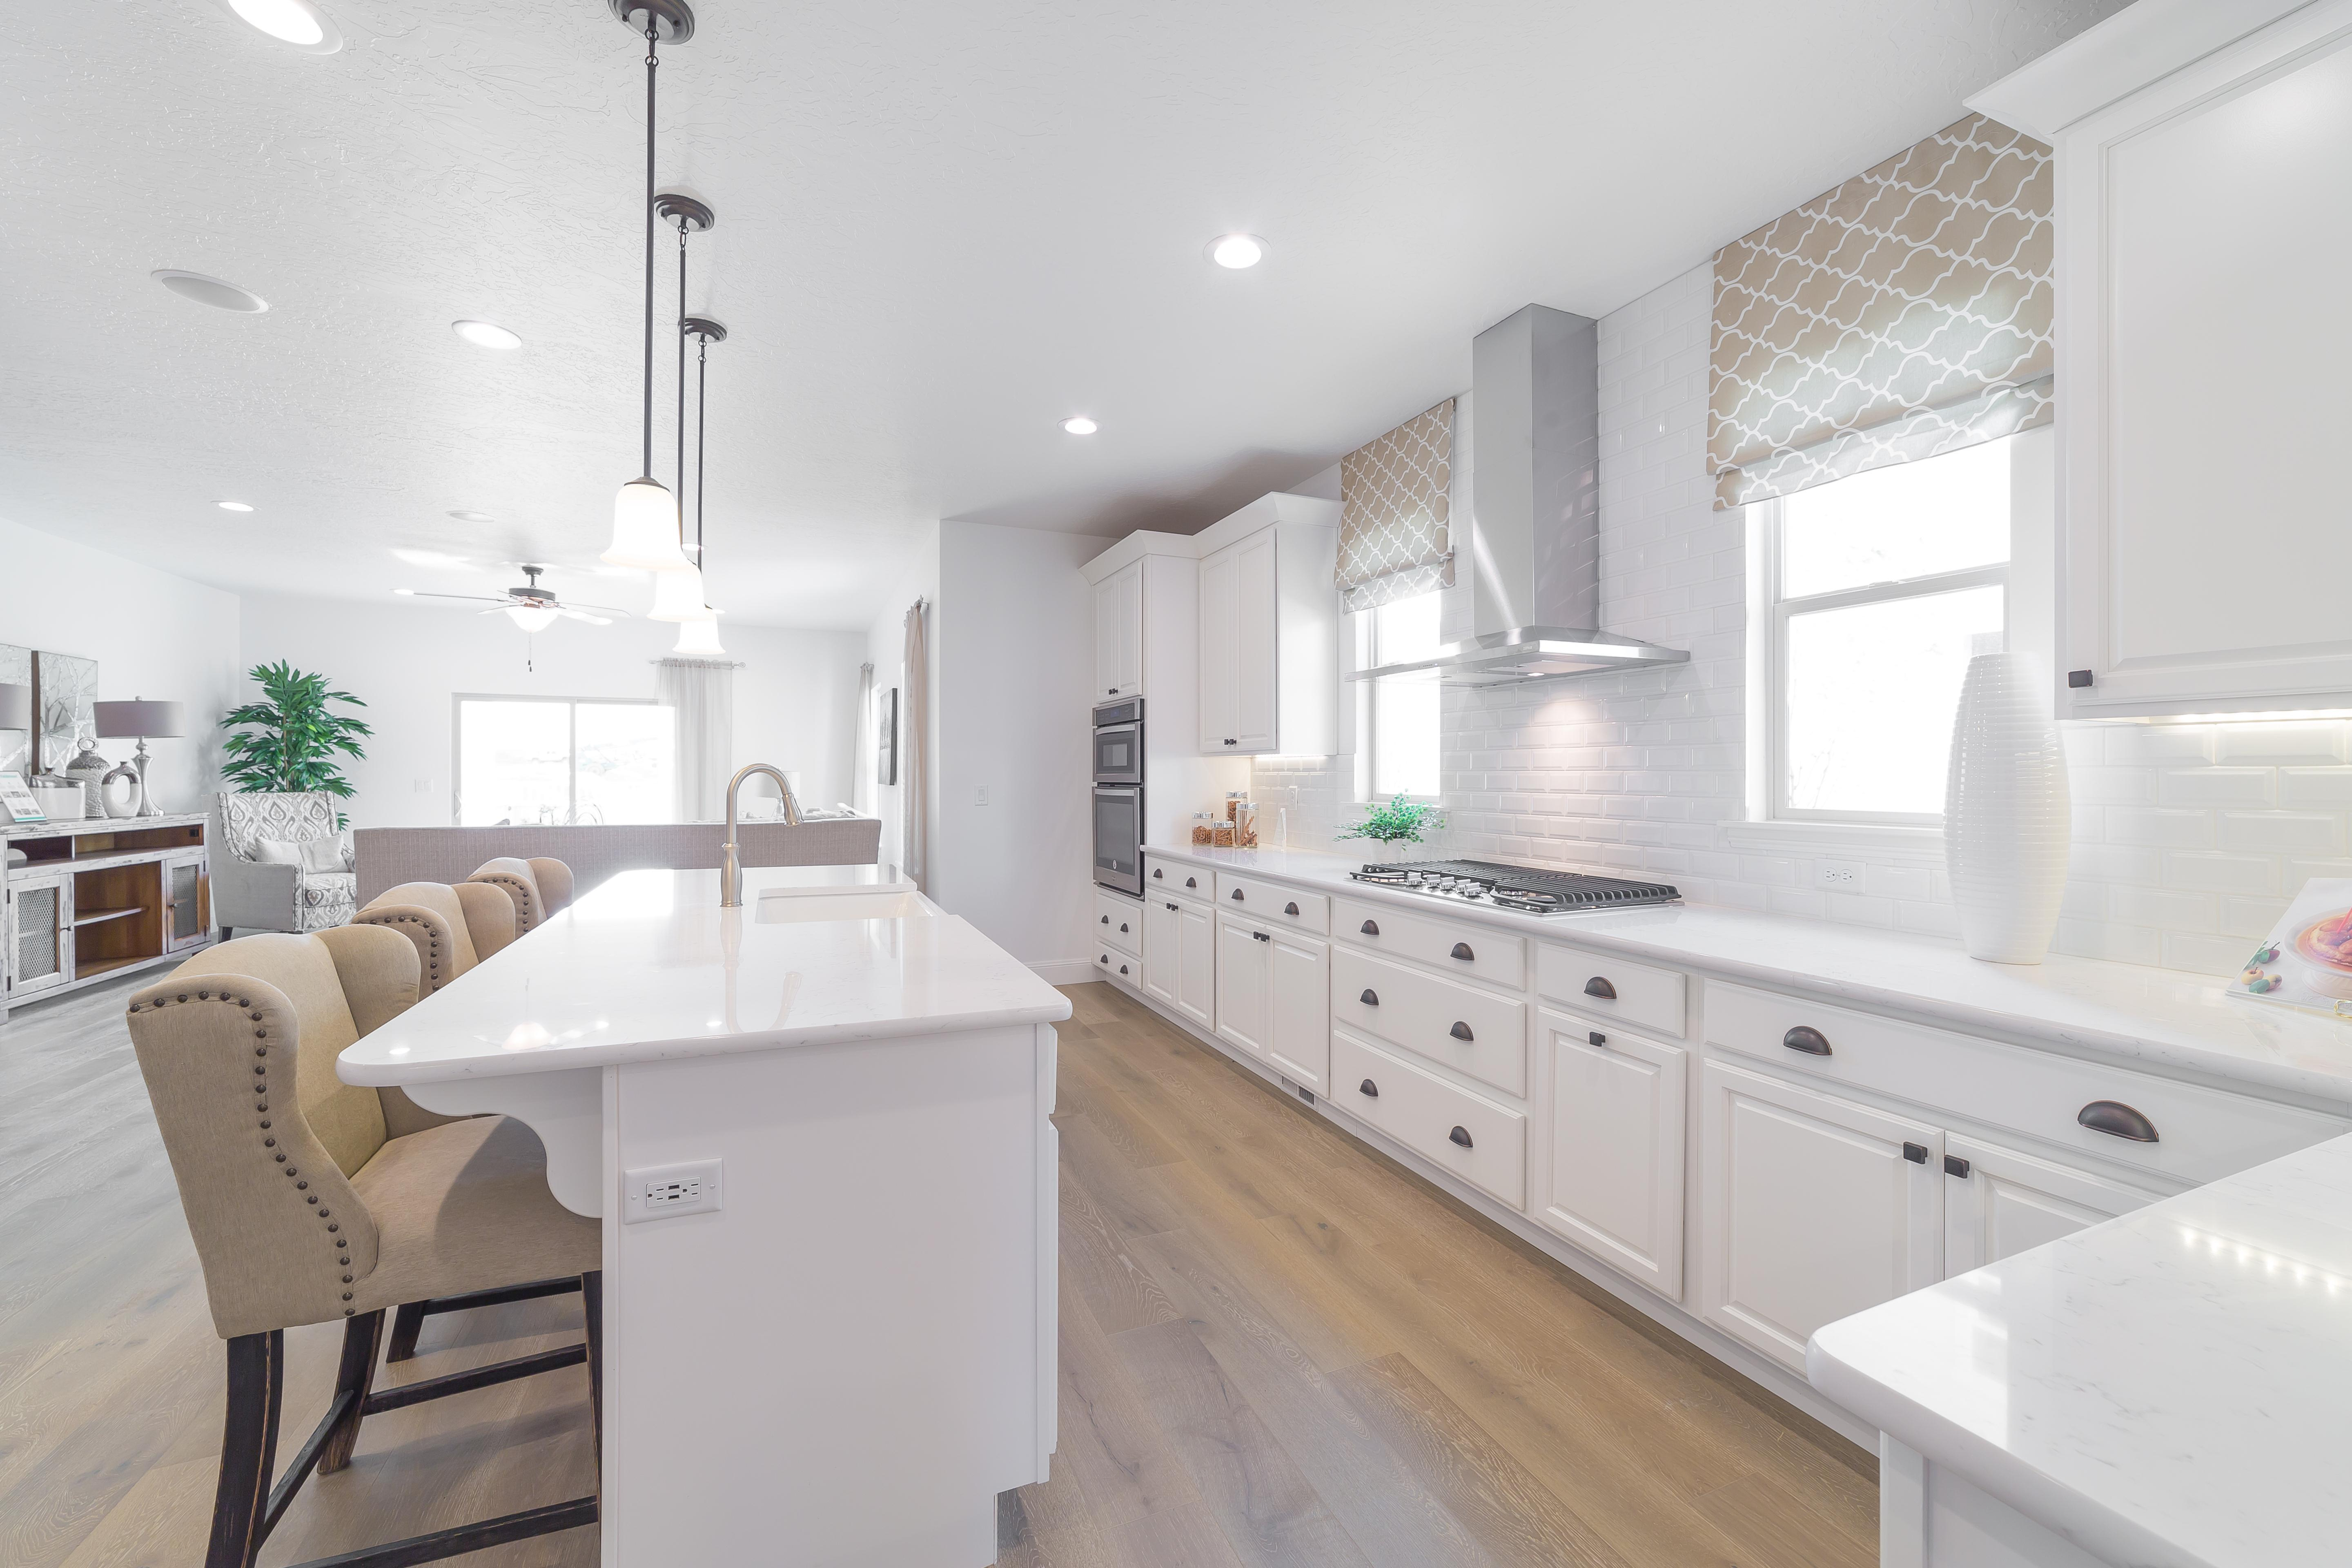 Kitchen featured in The Heritage - Arts and Crafts By Fieldstone Homes in Salt Lake City-Ogden, UT